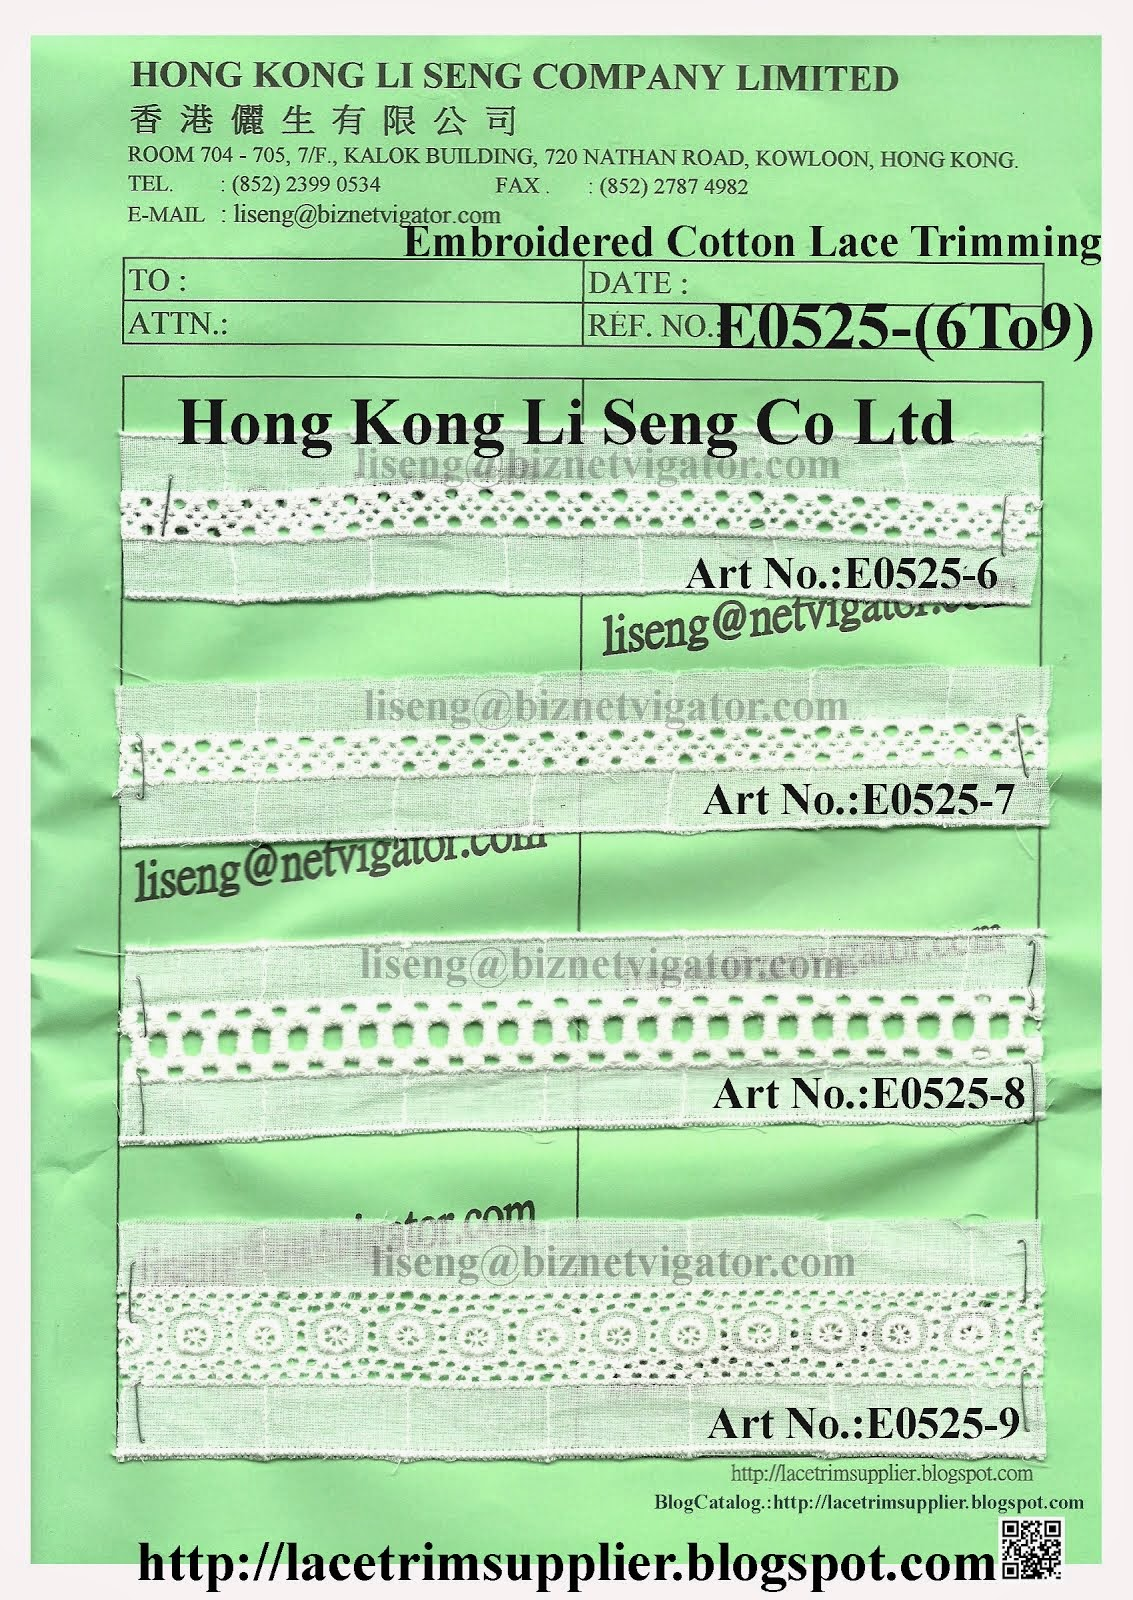 Embroidered Cotton Lace Trimming Factory - Hong Kong Li Seng Co Ltd